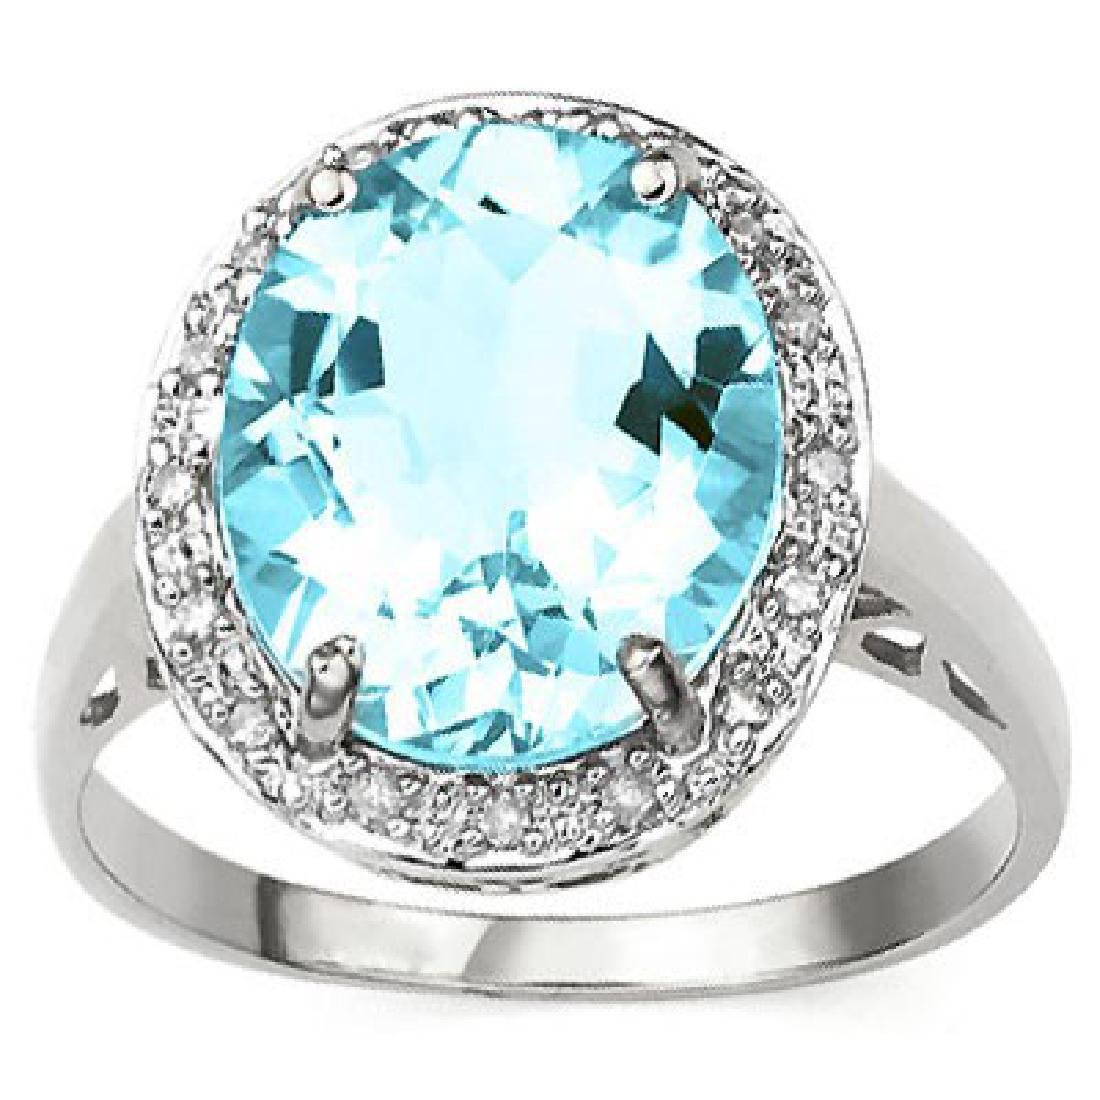 6CT FACETED OVAL SKY BLUE TOPAZ SOLITAIRE RING